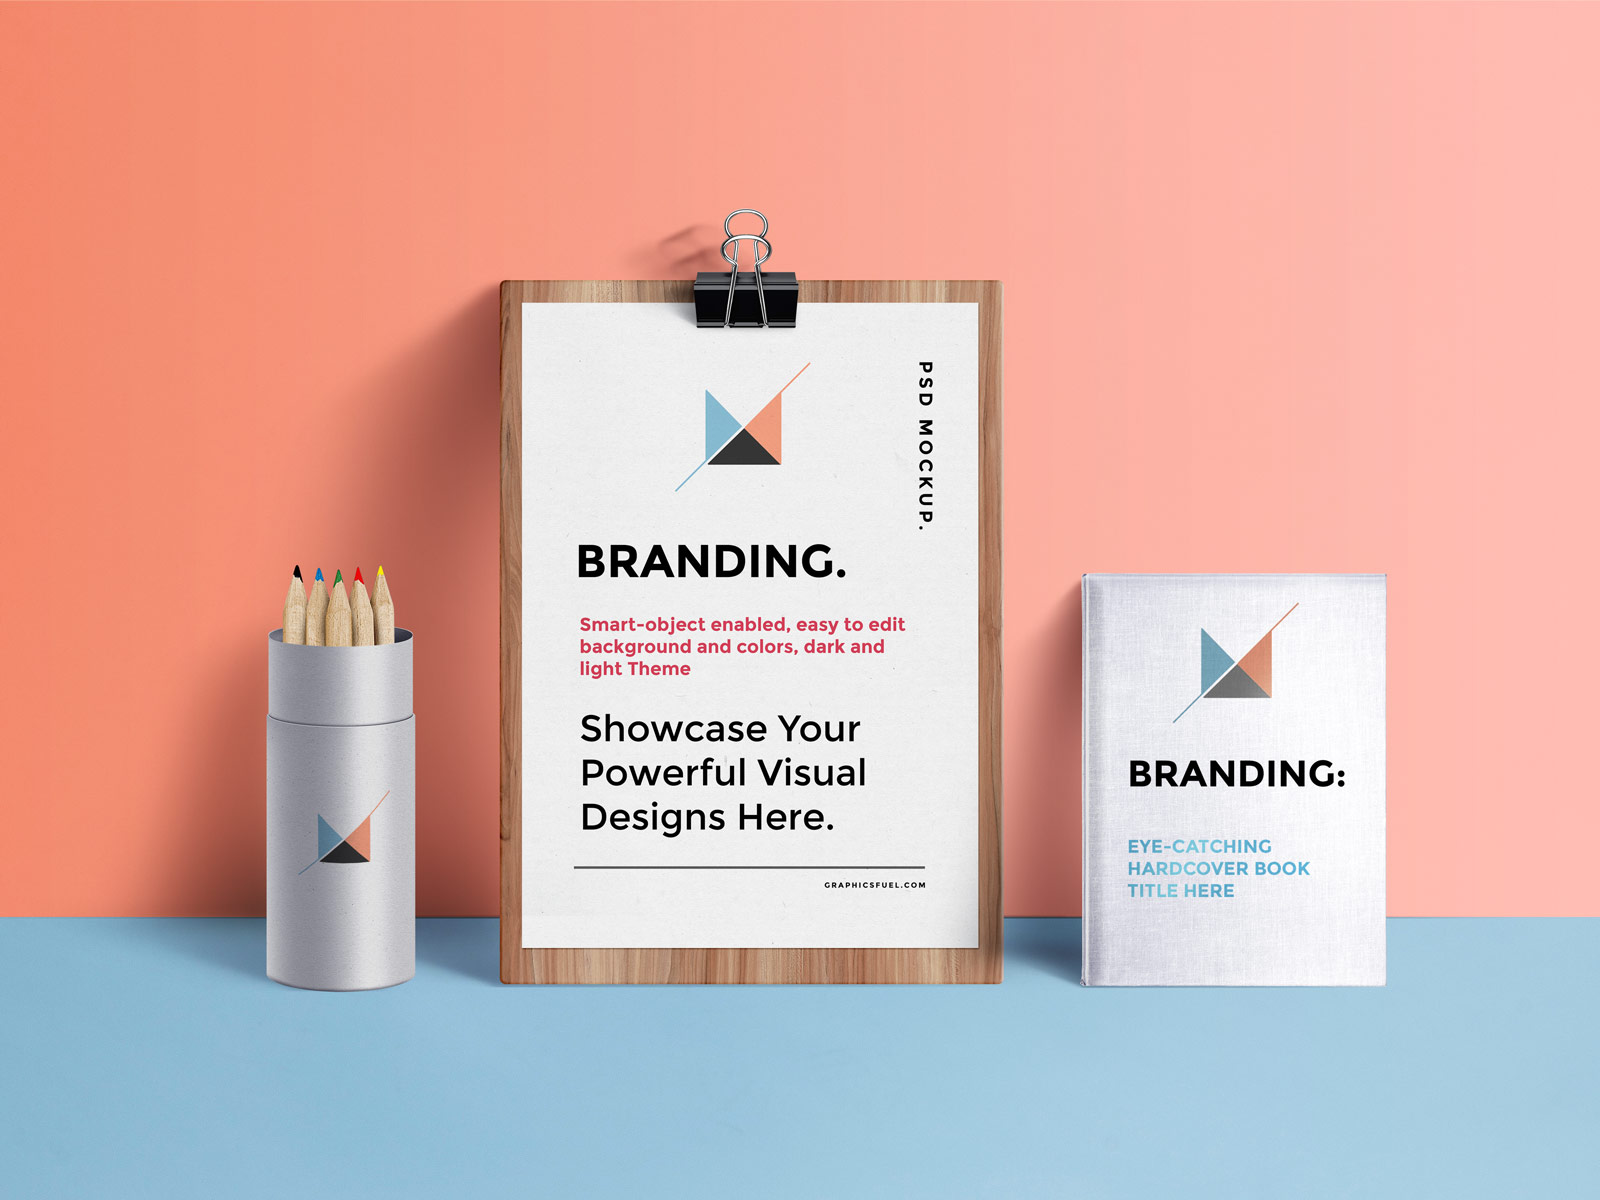 Free-A4-Paper-Clipboard,-Book-&-Pencil-Stand-Mockup-PSD